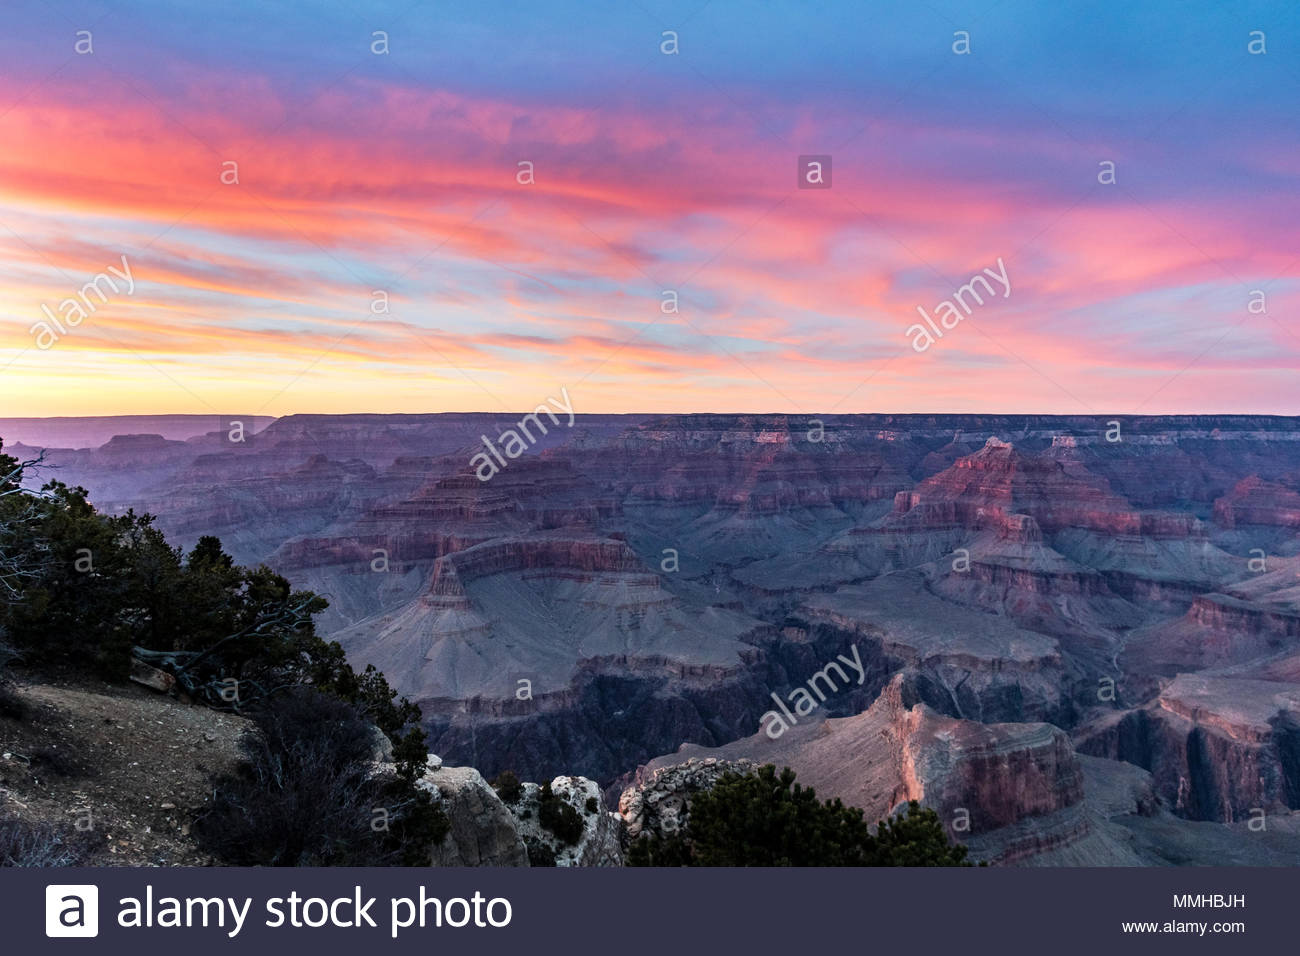 View of the sunset over the South Rim of the Grand Canyon in Arizona, USA - Stock Image